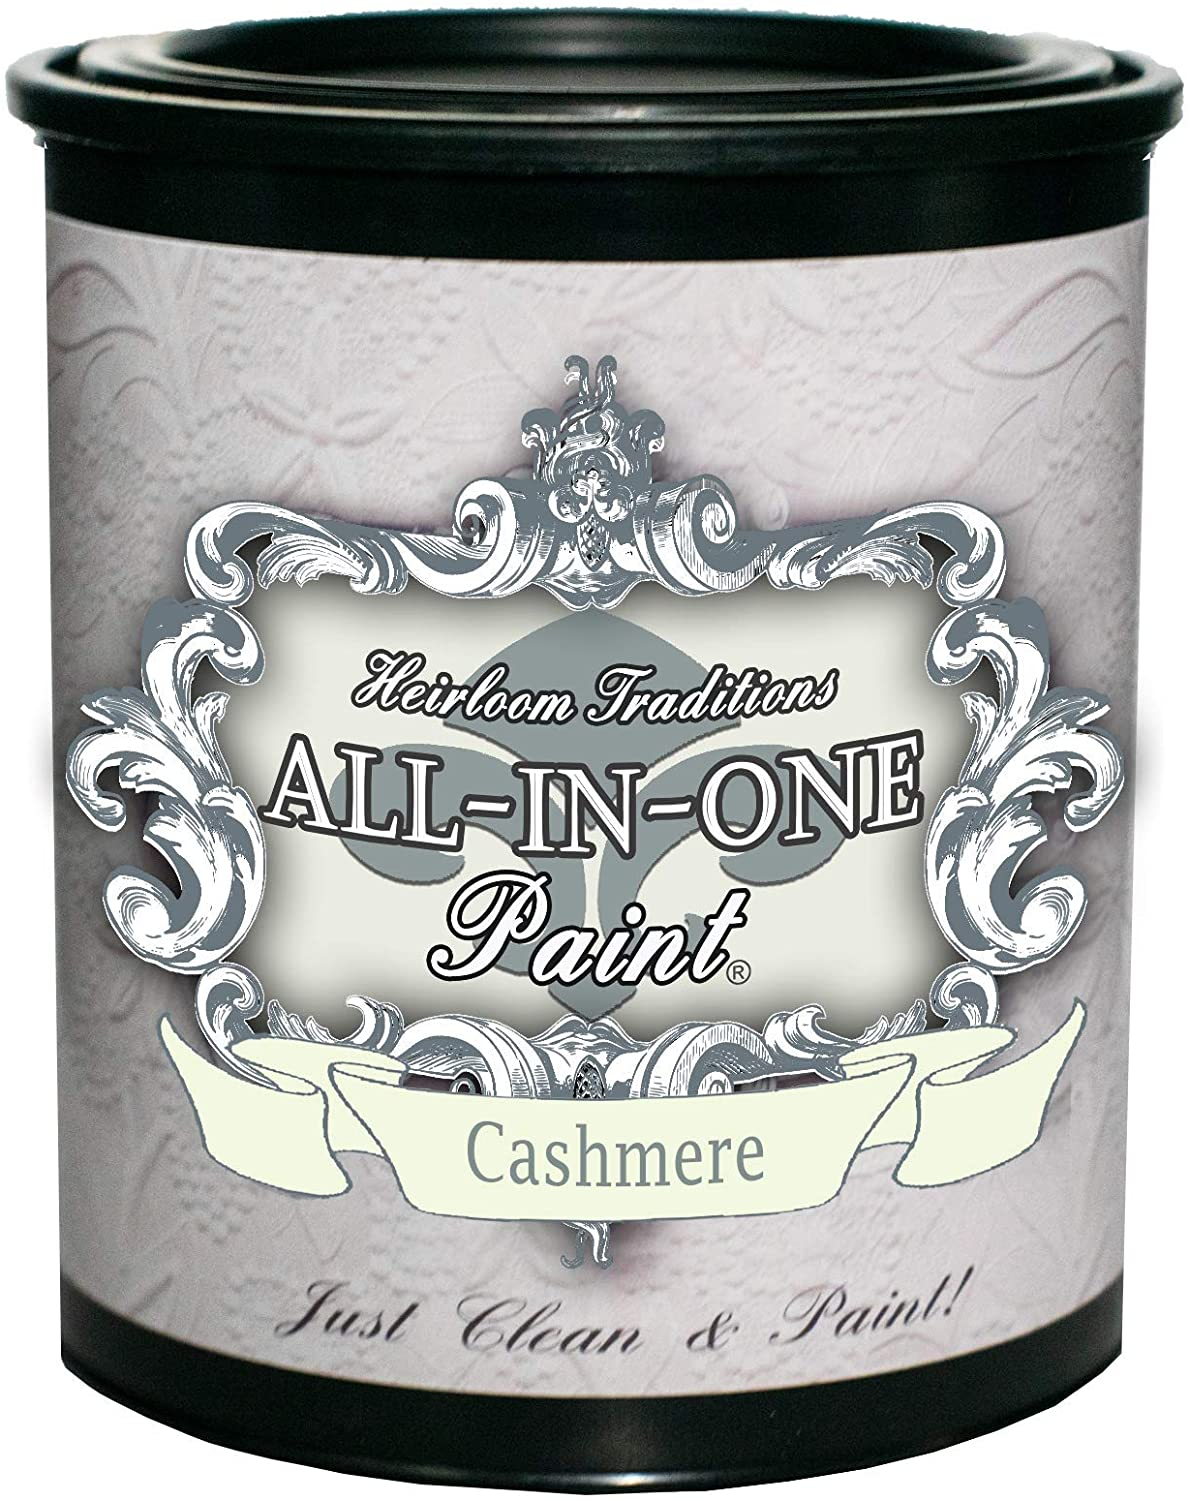 Cashmere, Heirloom Traditions All-in-ONE Paint for cabinets, Furniture and More, 32oz